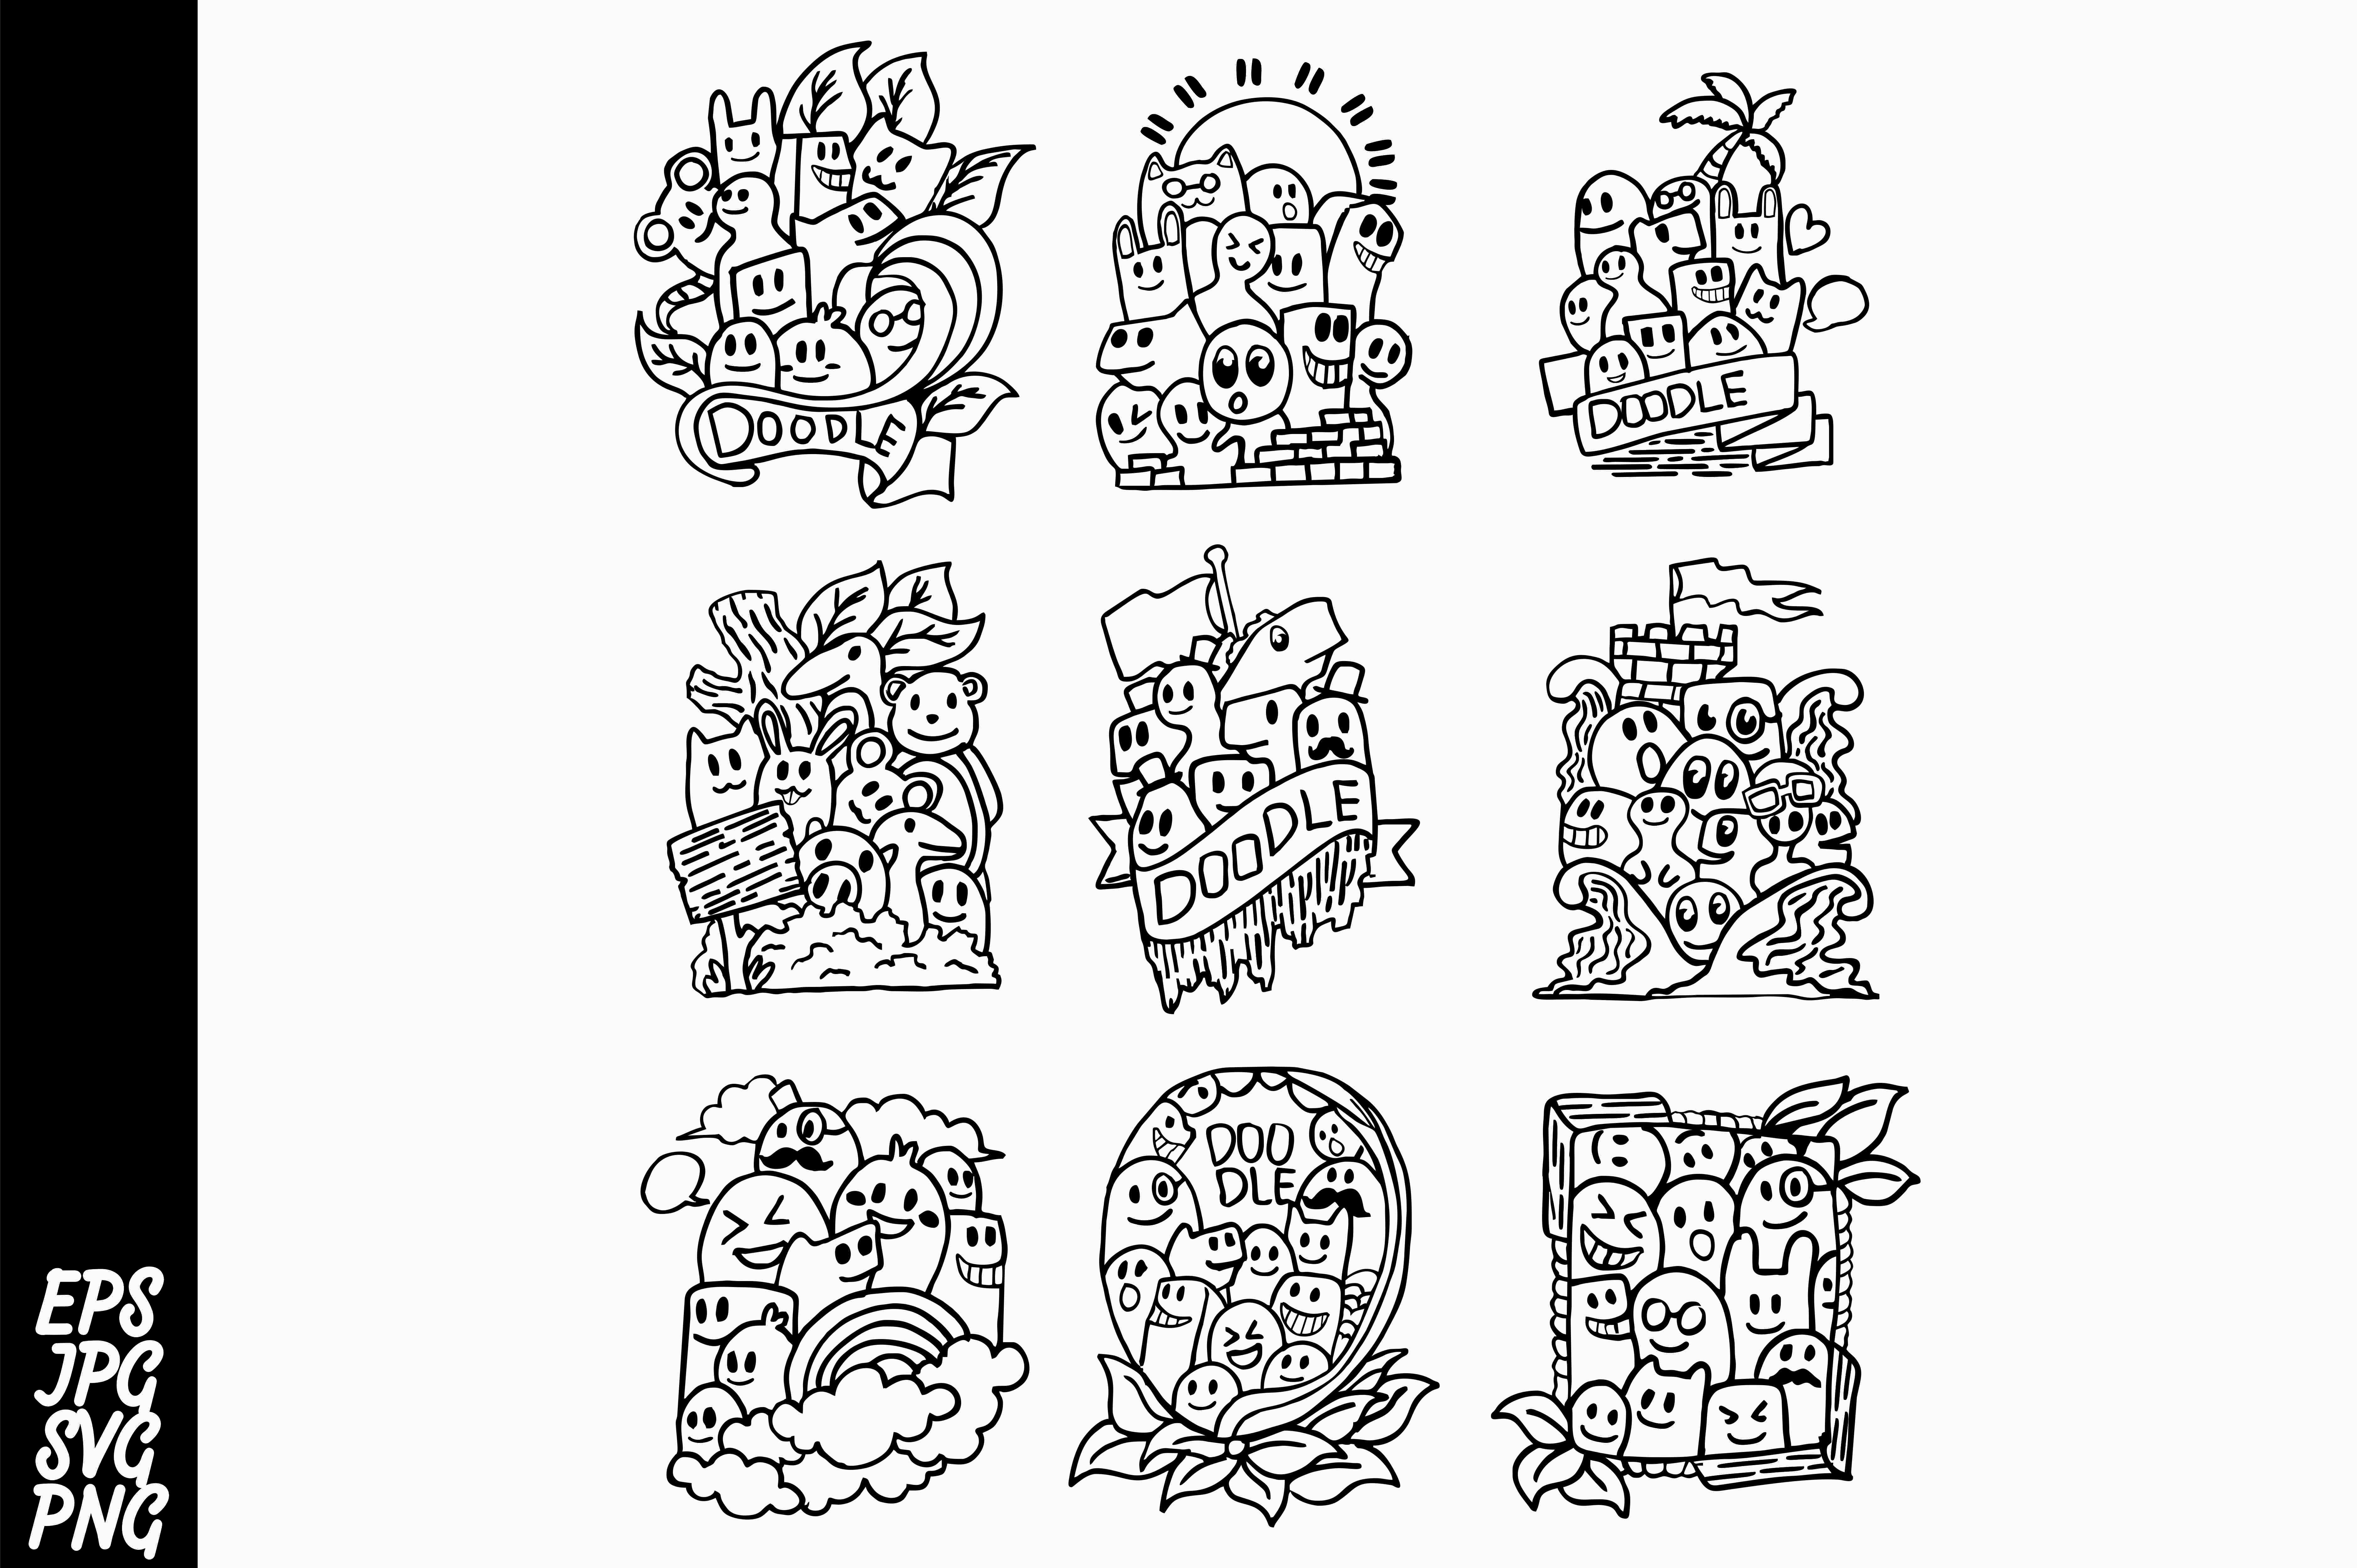 Download Free 9 Doodle Design Svg Bundle Graphic By Arsa Adjie Creative Fabrica for Cricut Explore, Silhouette and other cutting machines.